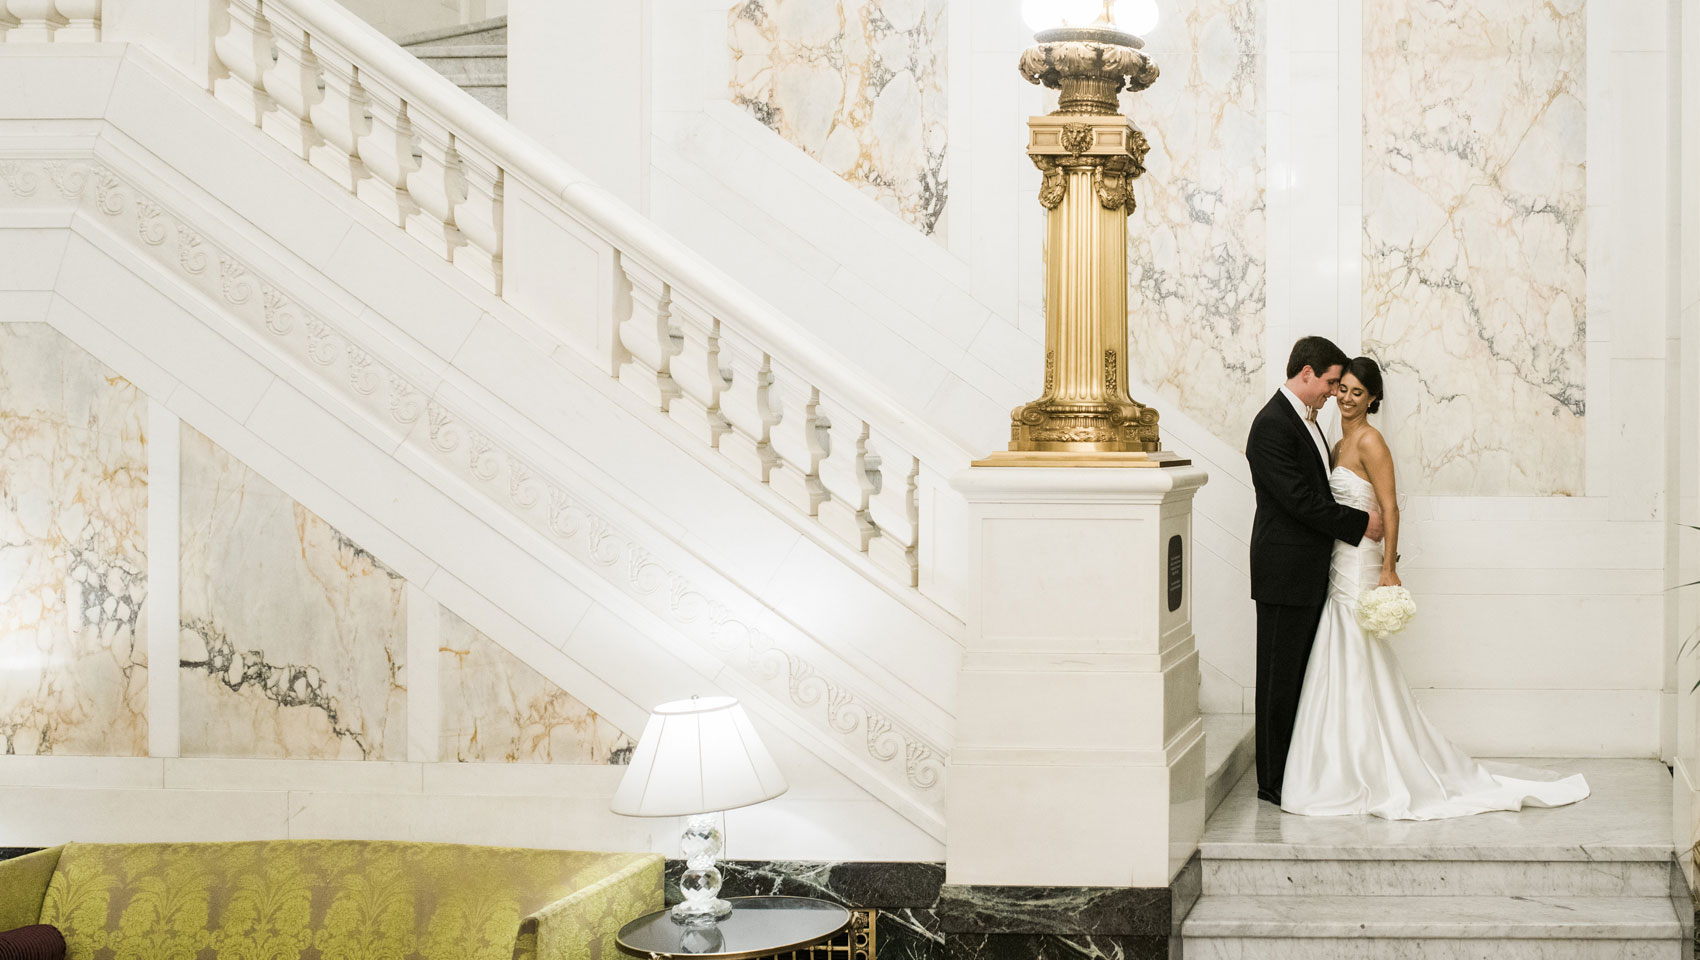 Courtney & Steve pose for a wedding portrait at the foot of the grand marble staircase at Kimpton Hotel Monaco Baltimore.